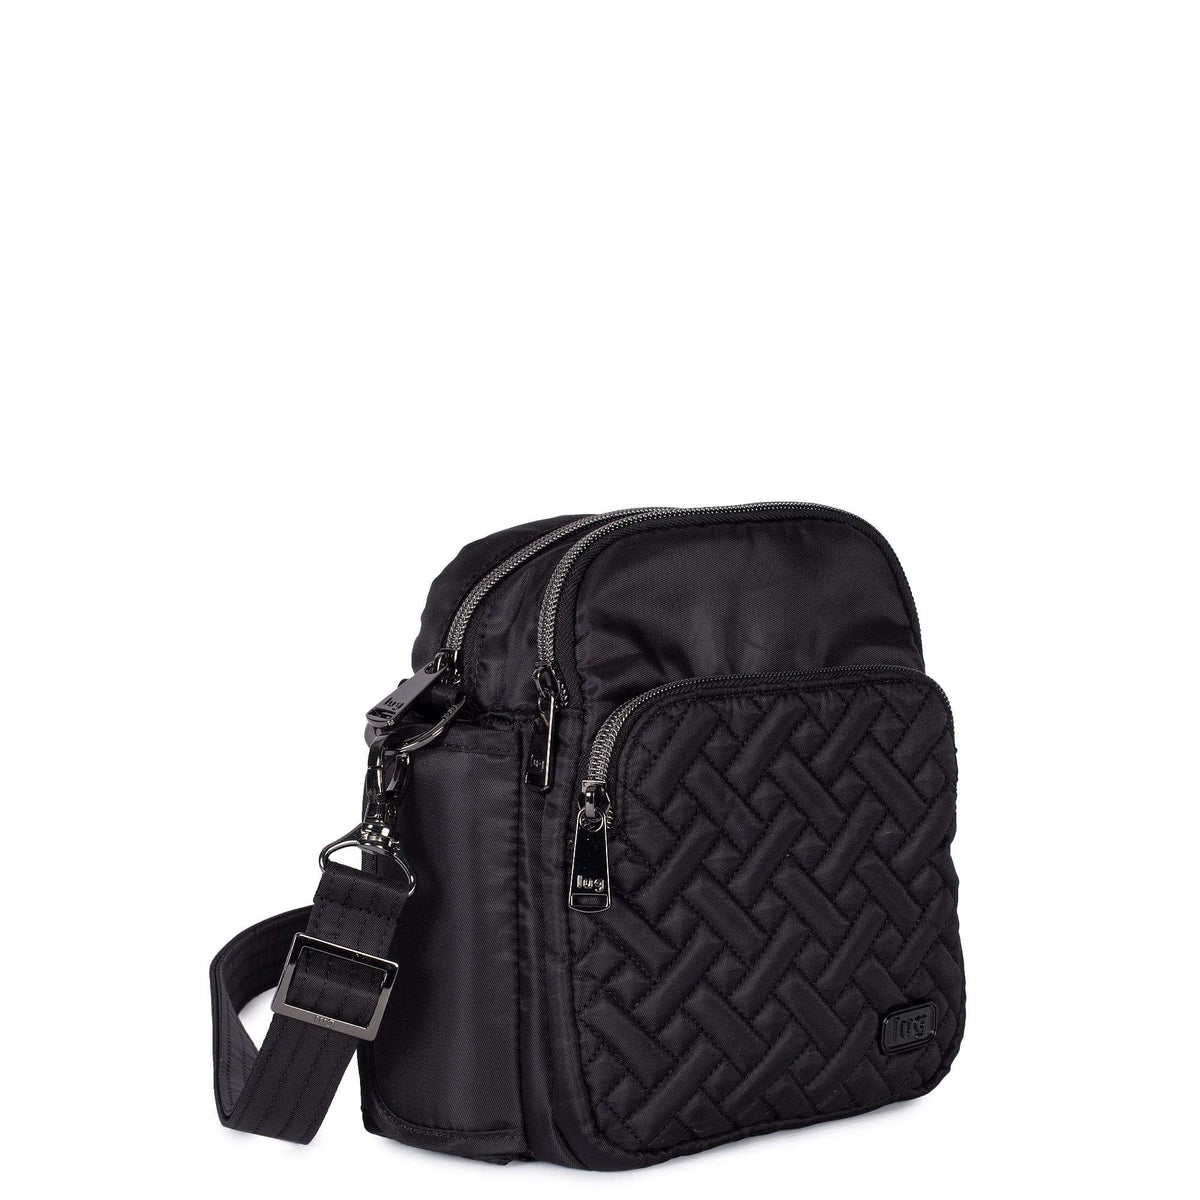 Can Can SE Convertible Crossbody Bag